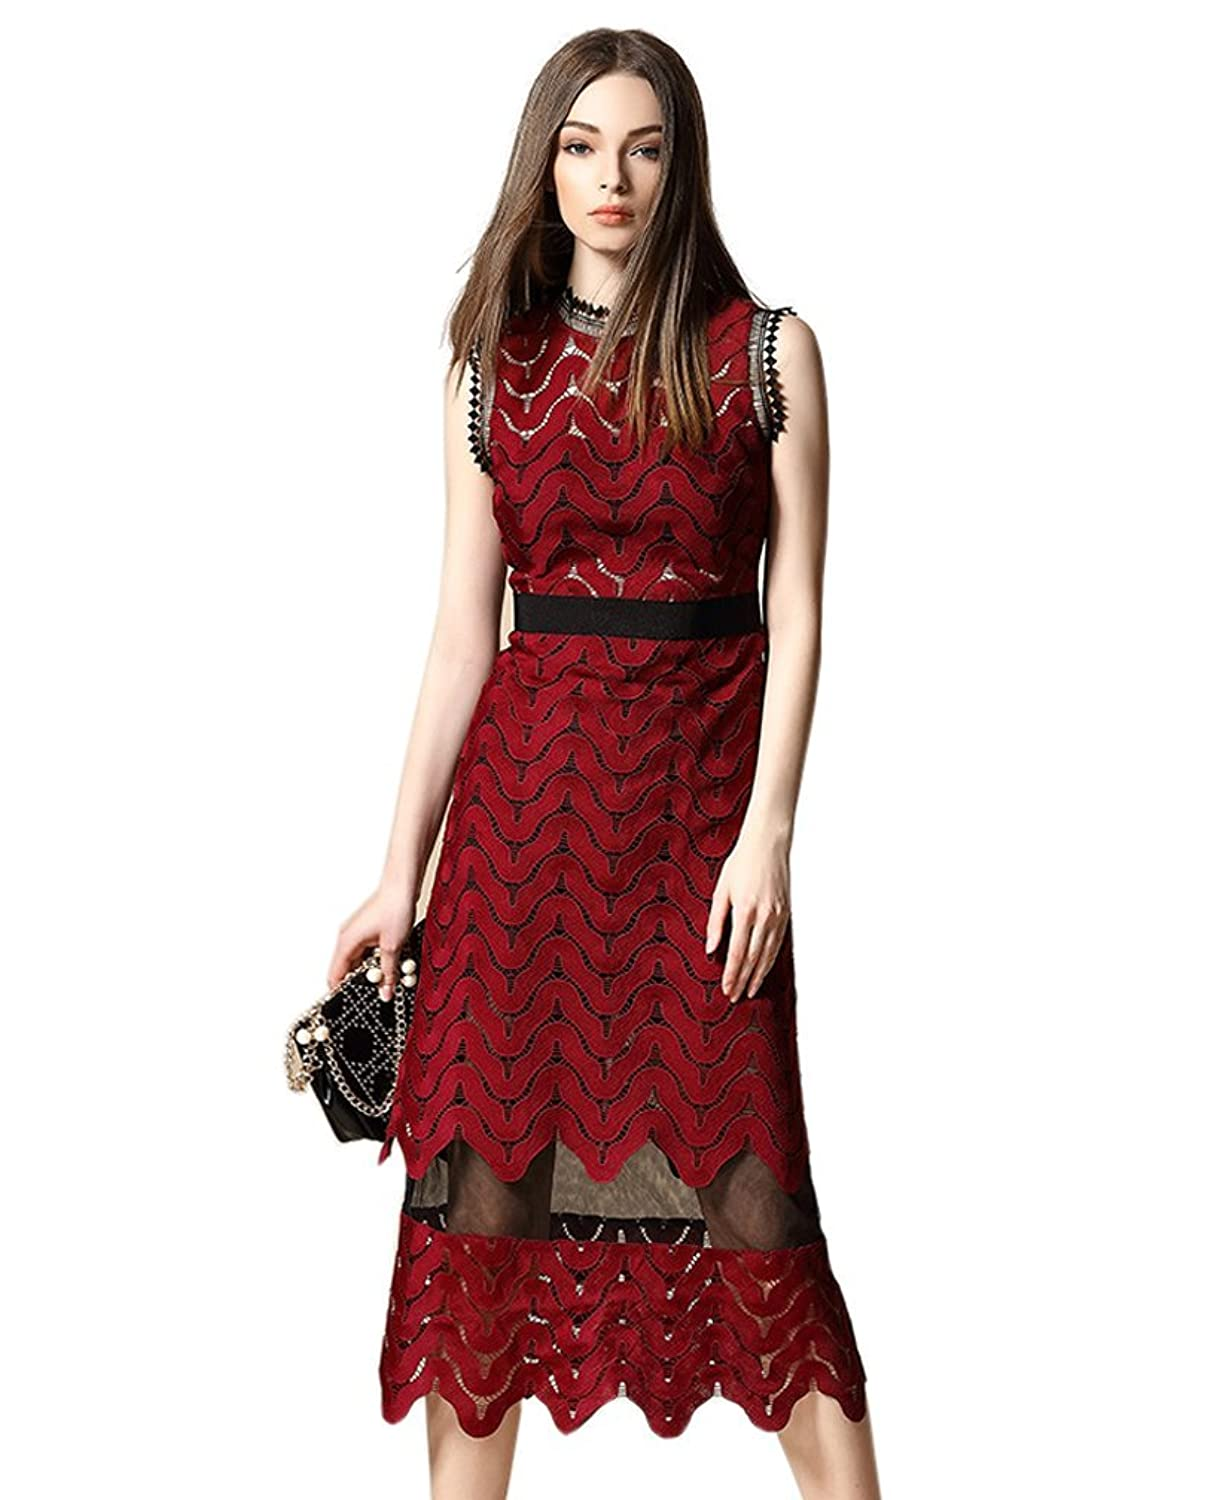 Into your fashion game with amazing party dresses cocktail dresses day - Amazon Com Tuliplazza Women Zigzag Tunic Sheath Cocktail Prom Party Gowns Midi Lace Dress Clothing